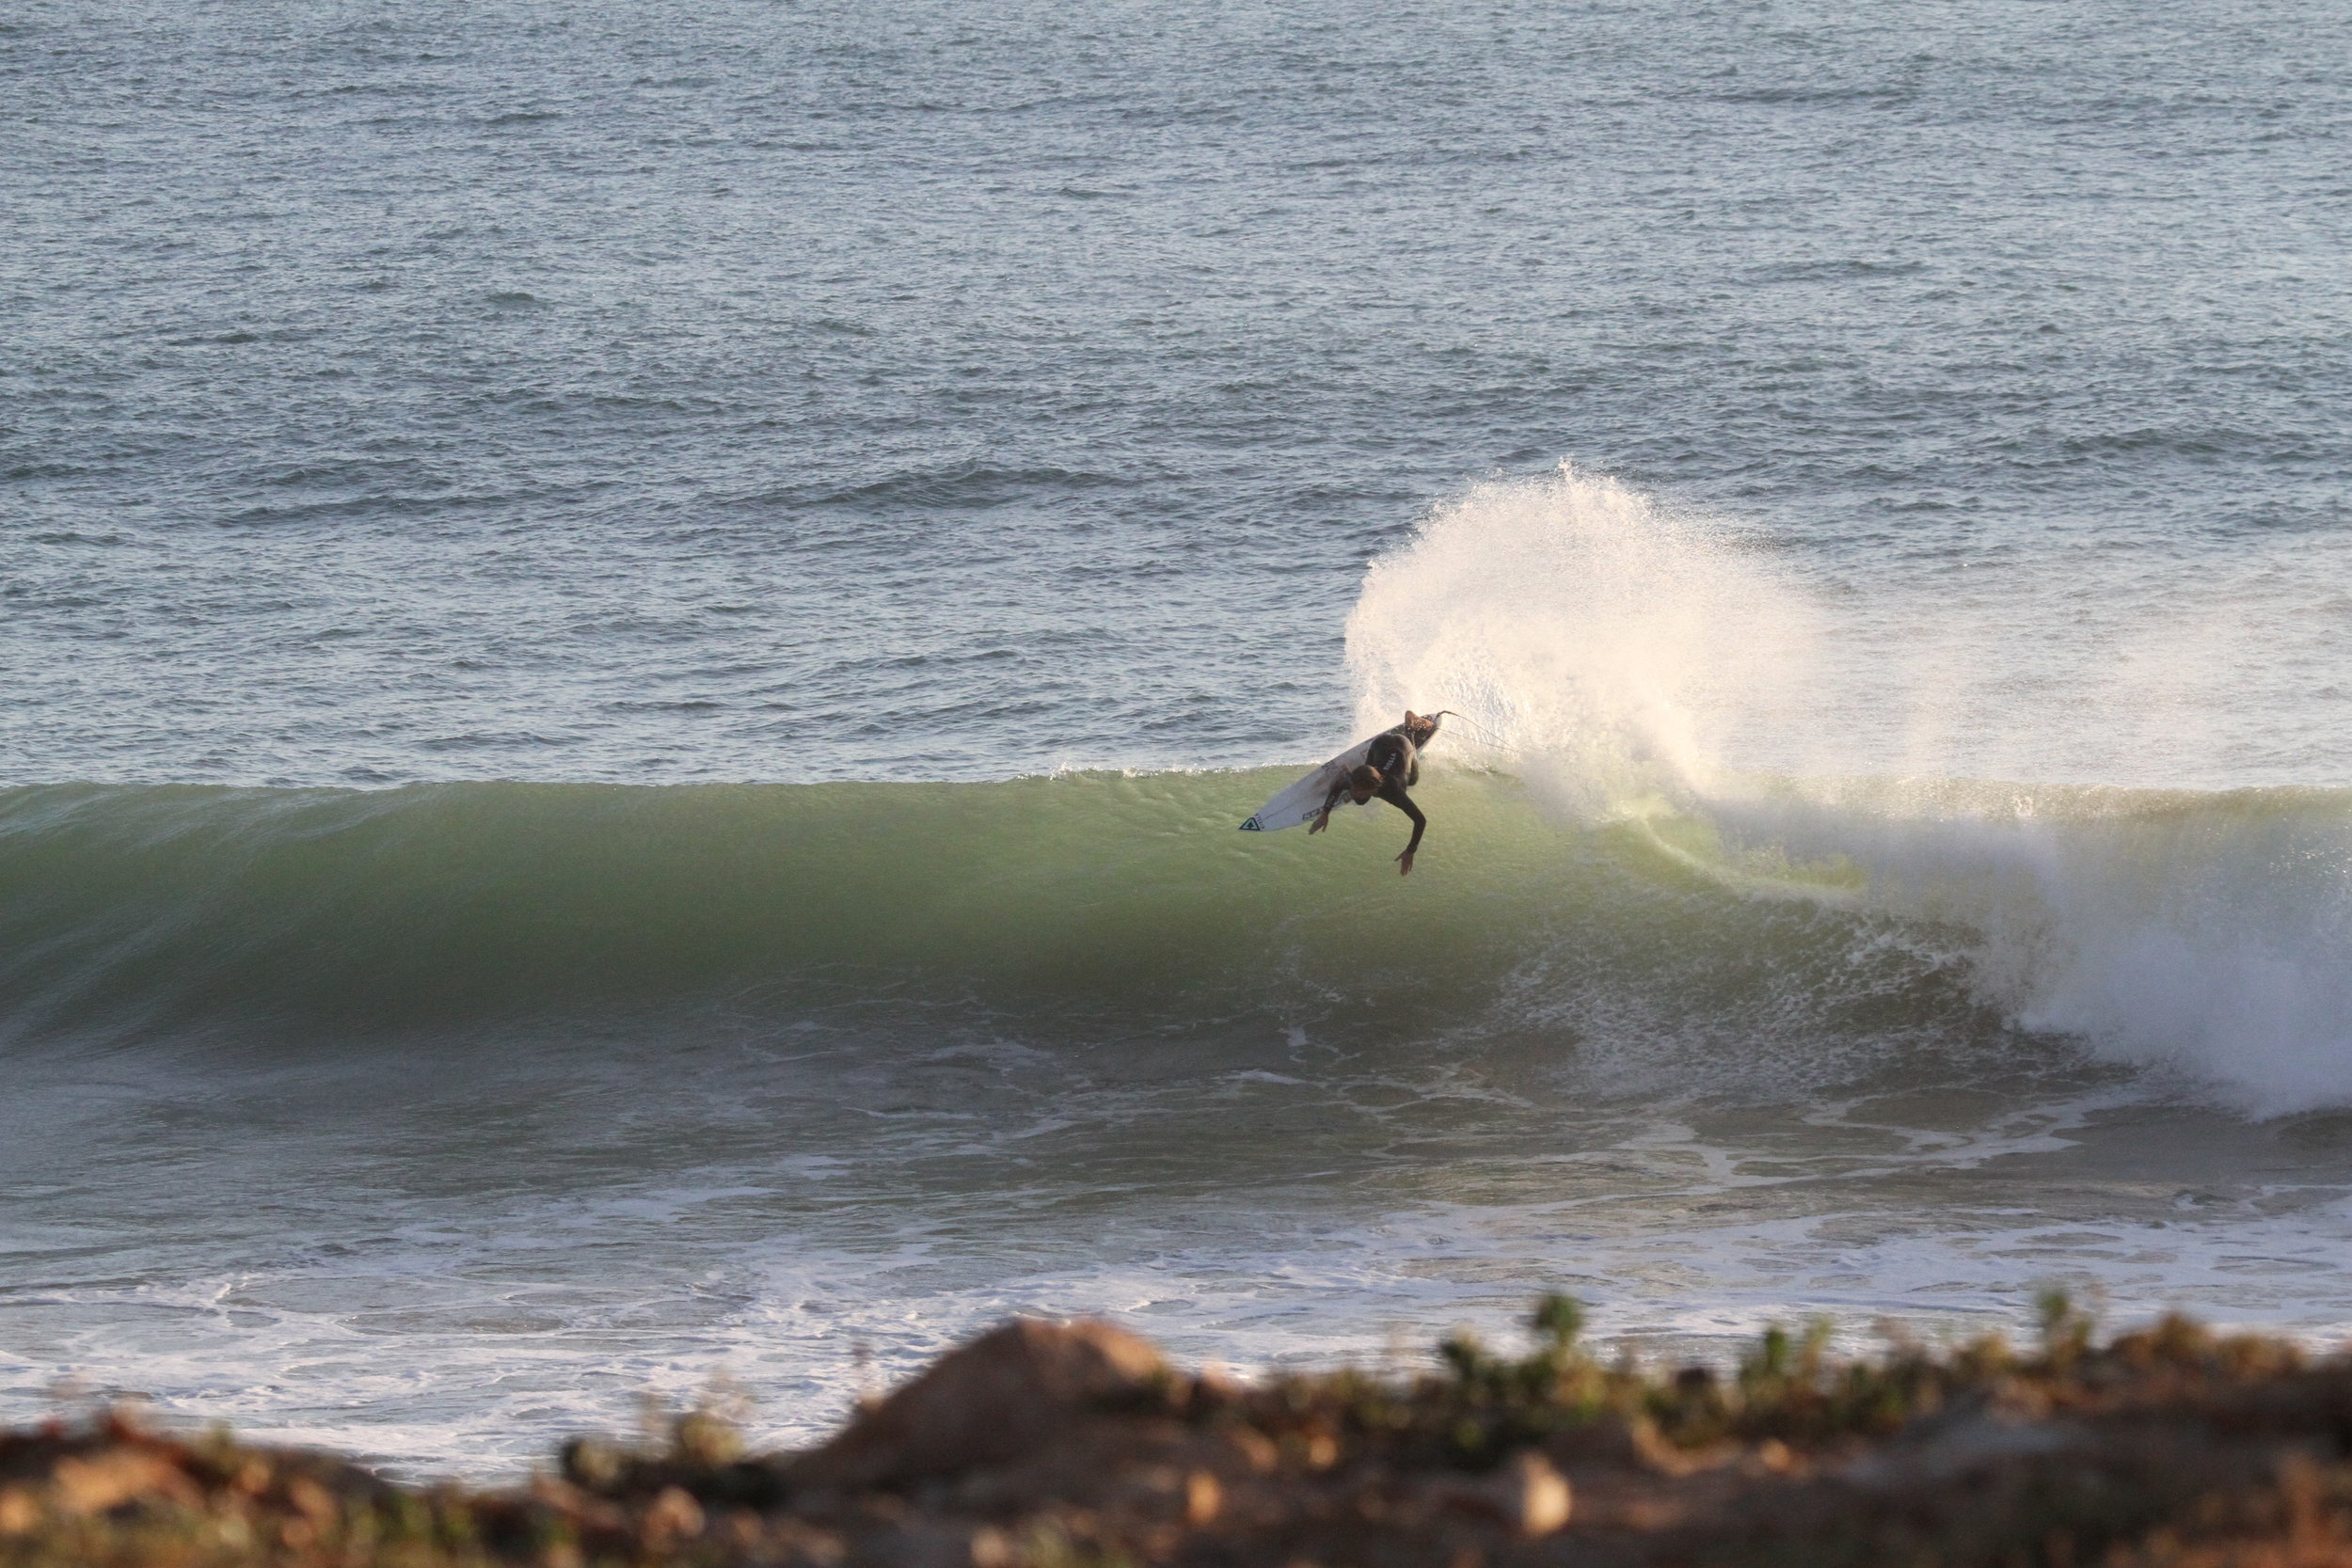 Boilers Surf Spot Morocco